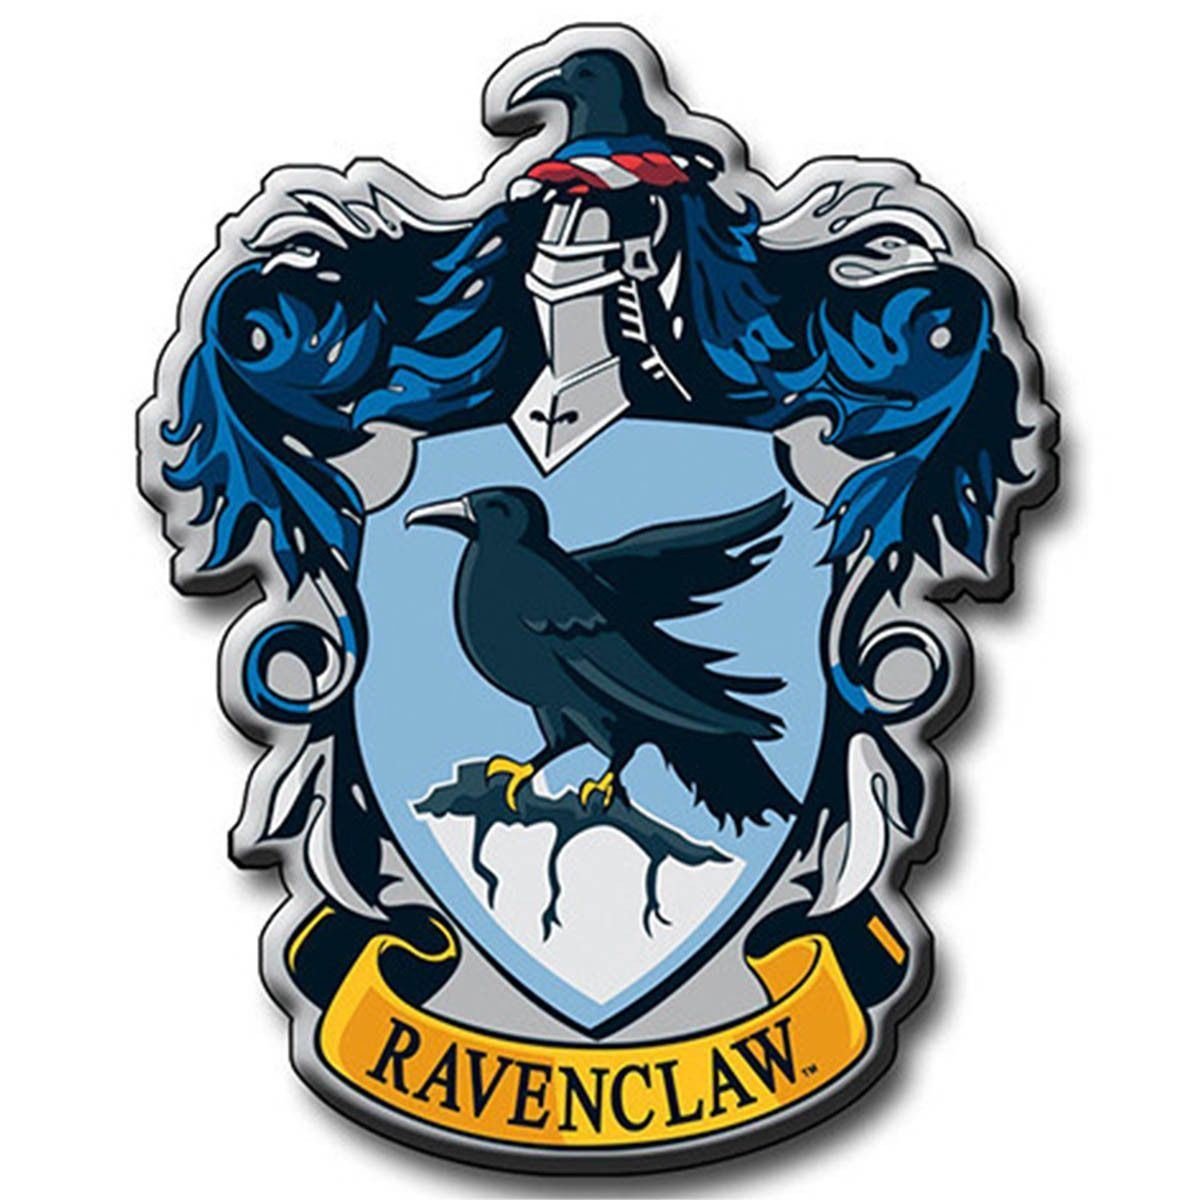 Harry Potter Ravenclaw Crest Magnet Escudos Harry Potter Harry